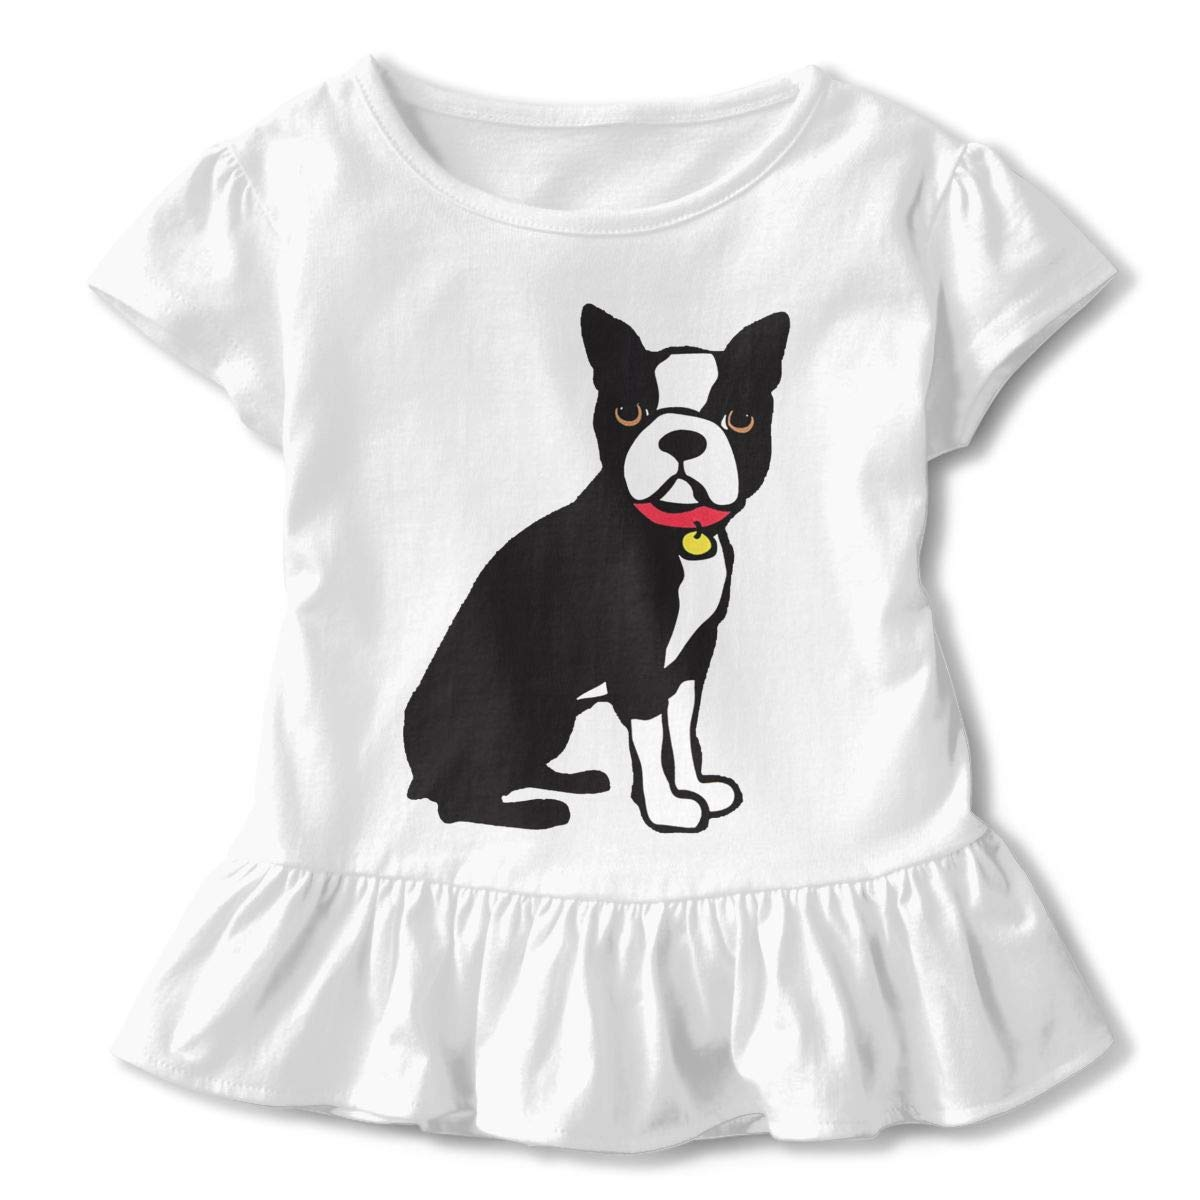 CZnuen Boston Terrier My Best Friend Baby Girls Round Neck Short Sleeve Ruffle T-Shirt Top